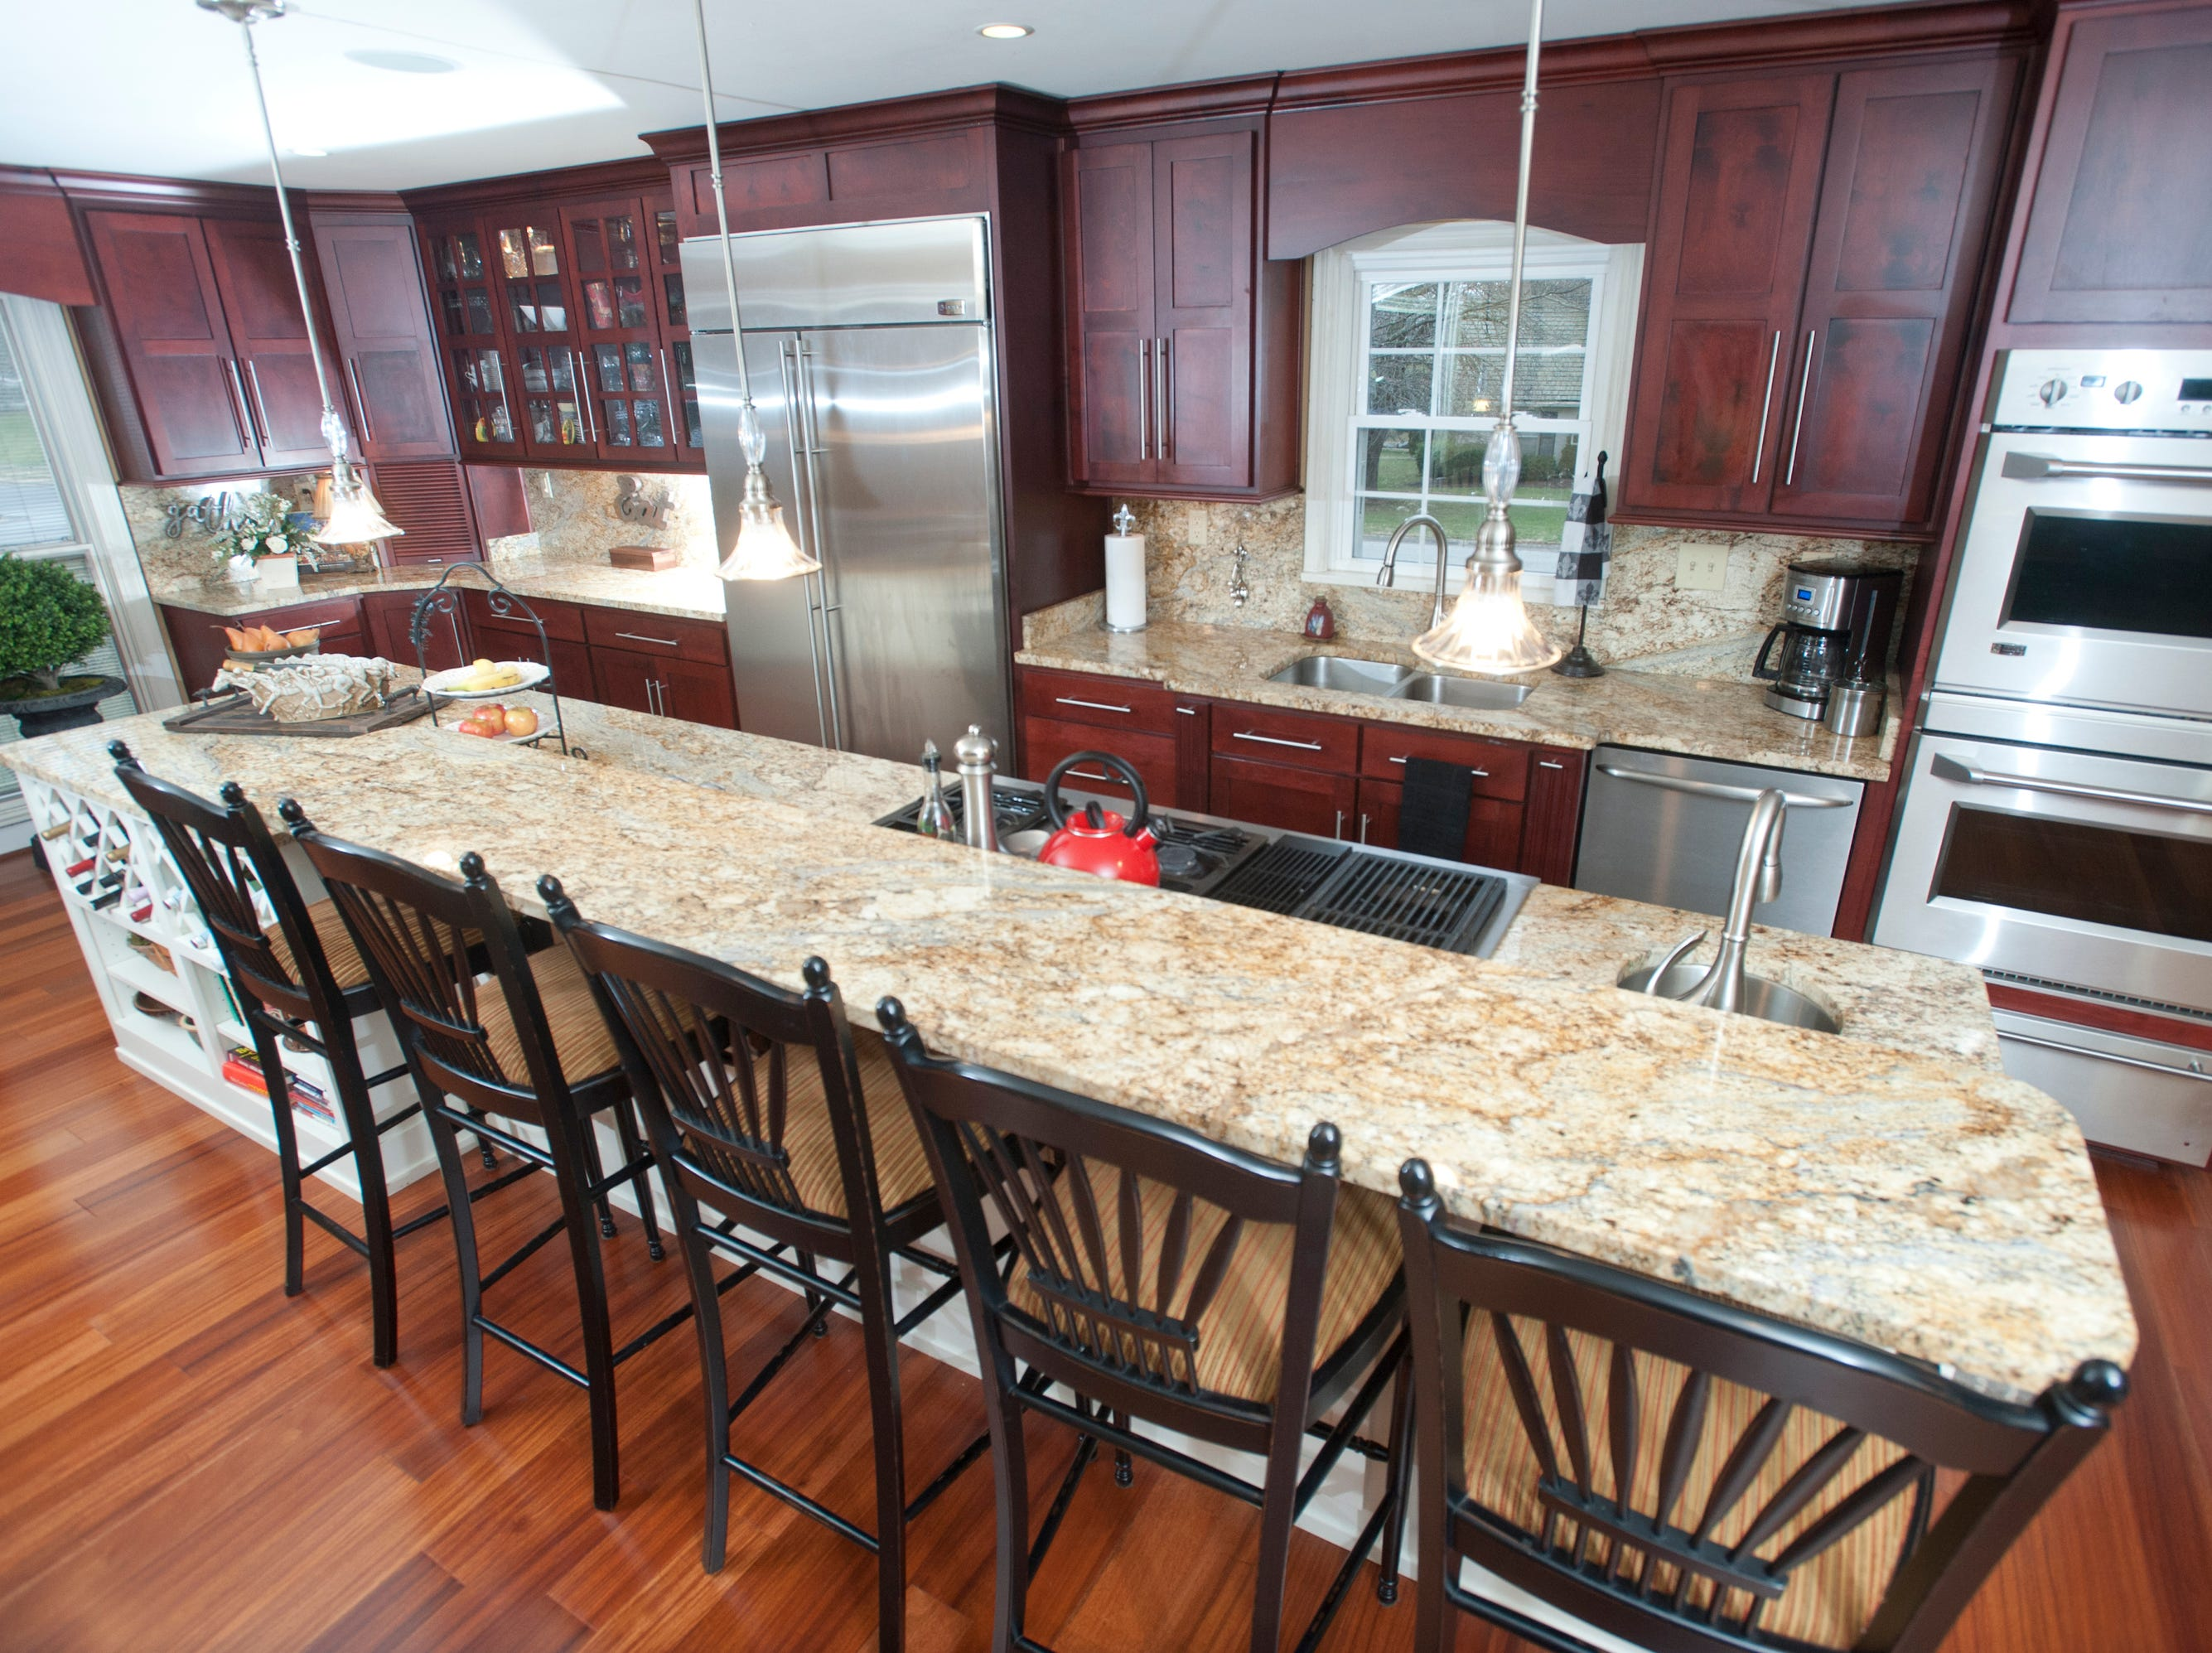 The Deebs combined the home's kitchen and dining room to make a new spacious kitchen which boasts an island 13 feet long.